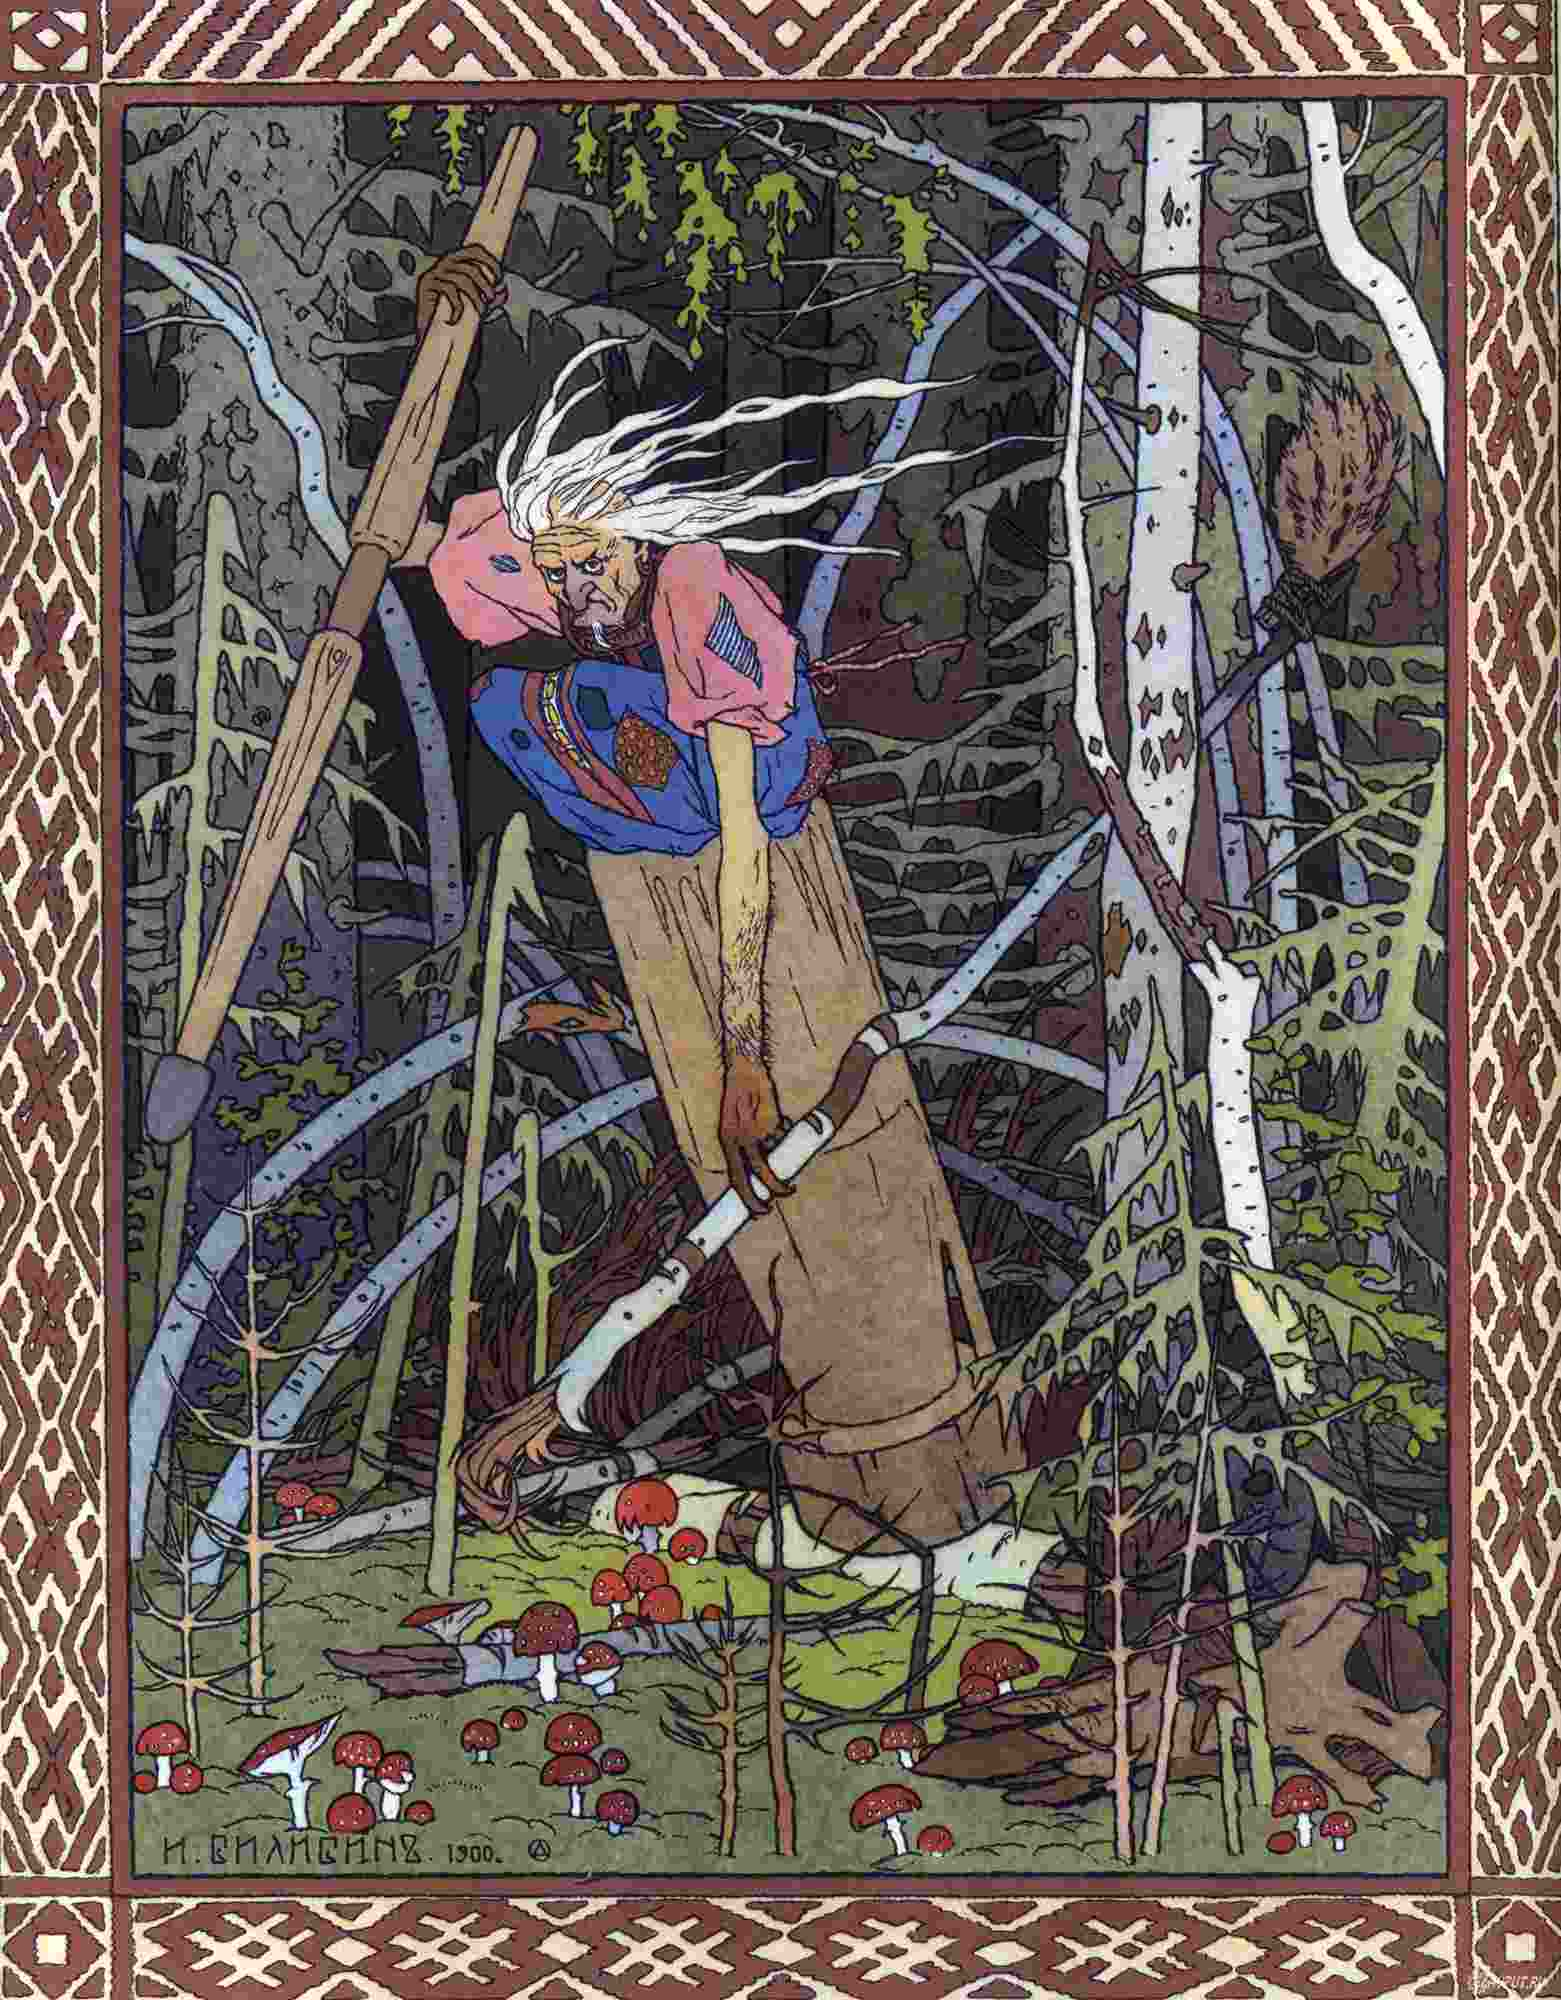 Baba Yaga, from Vasilisa the Beautiful 5 - public domain